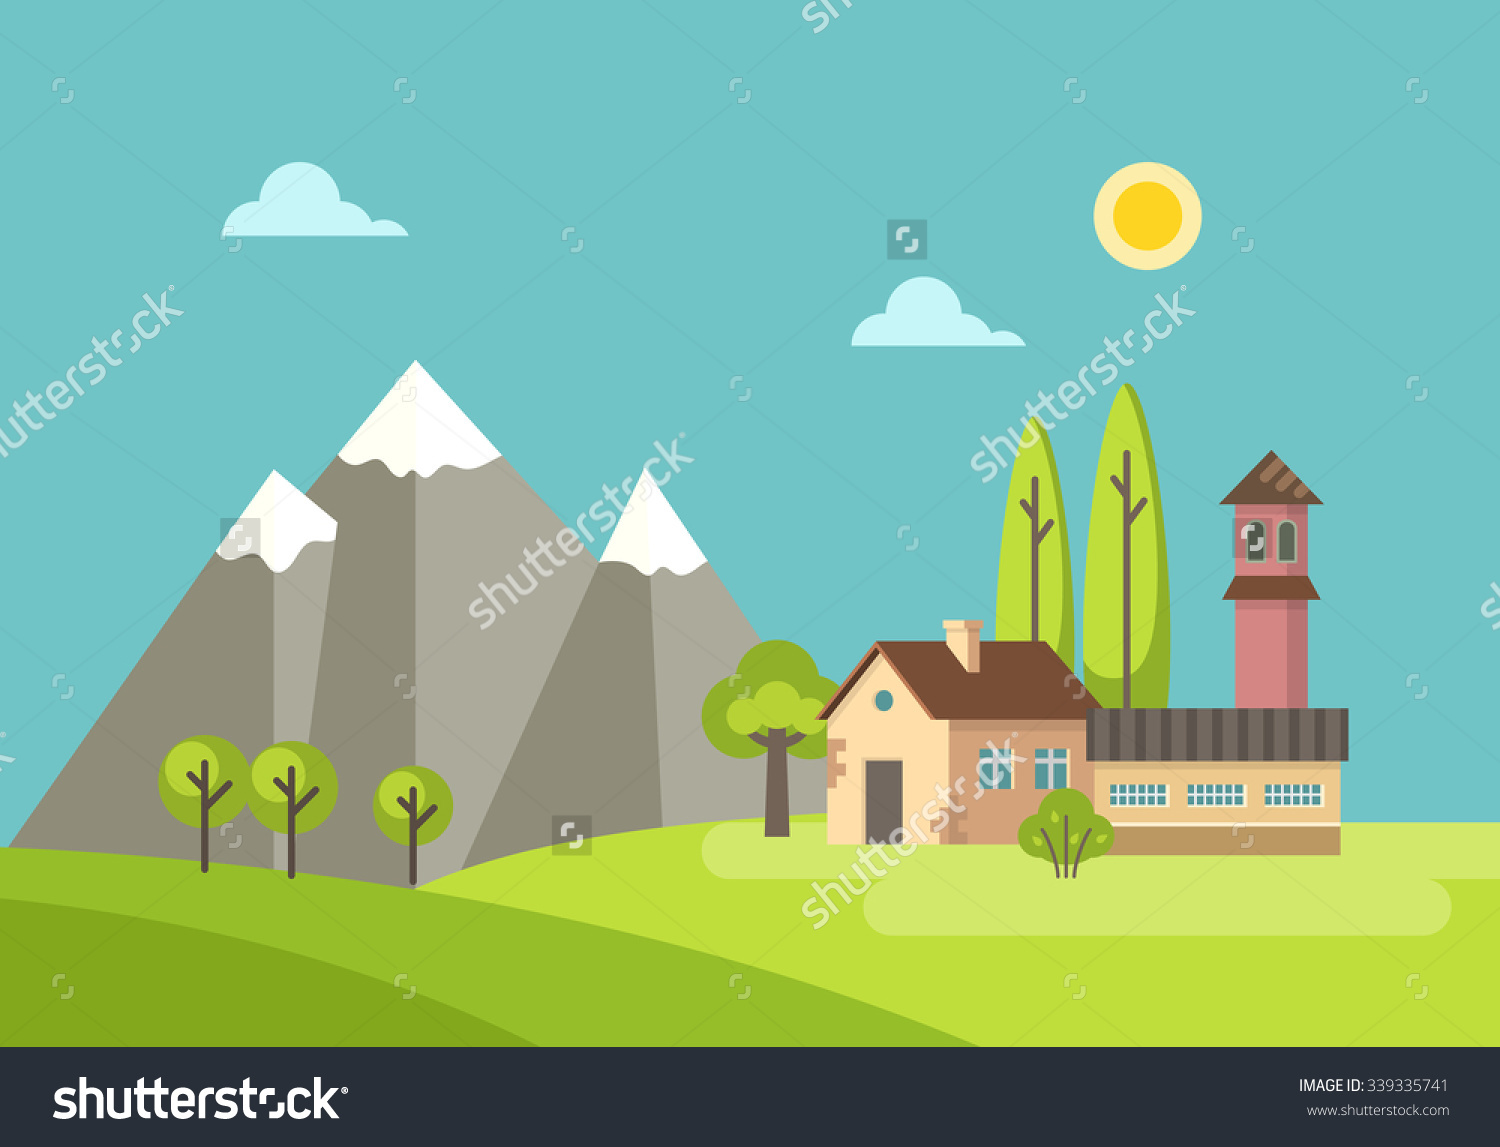 Flat Design Rural Landscape Illustration Country Stock Vector.